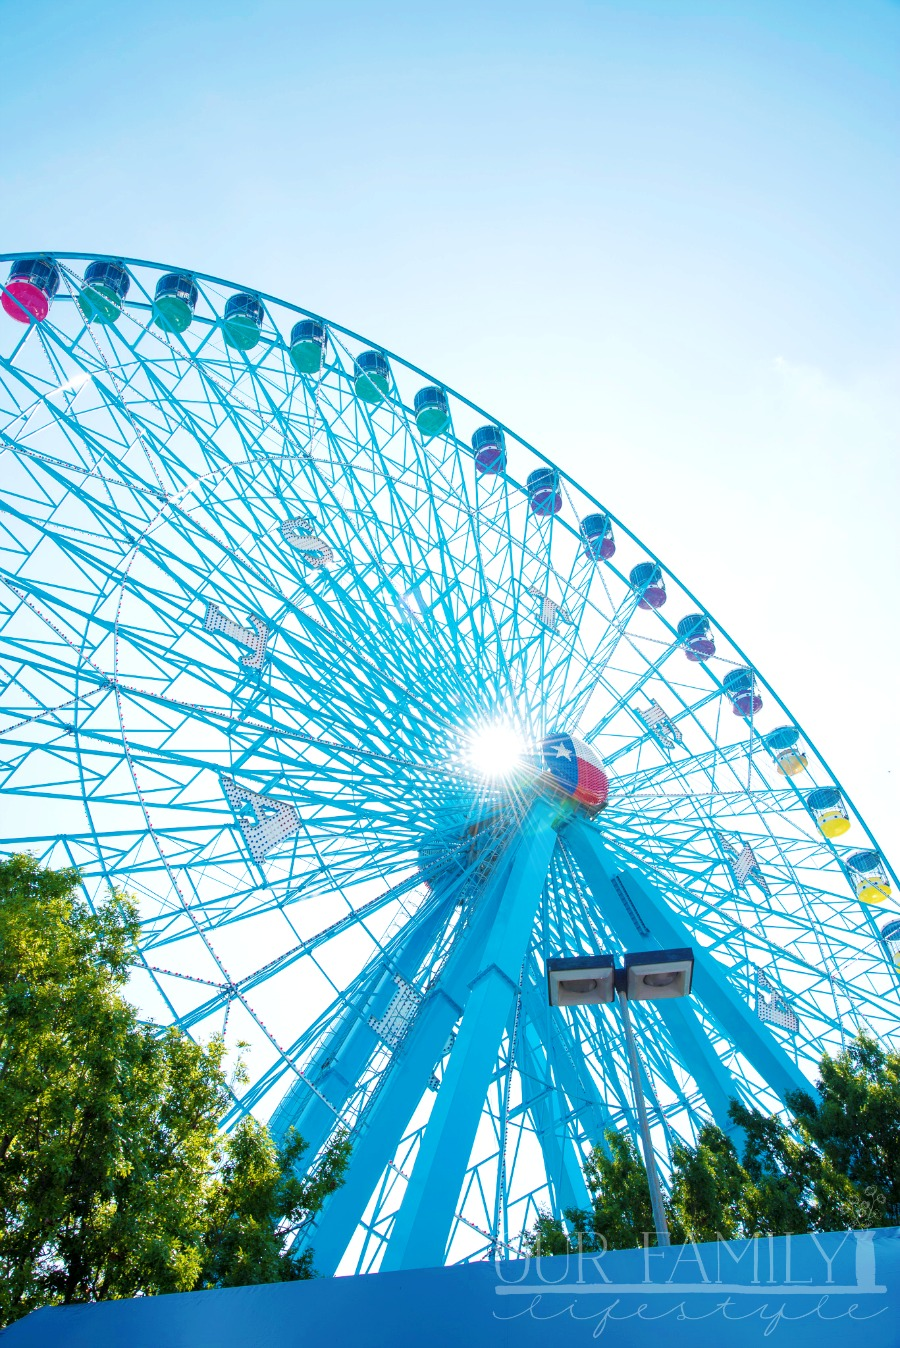 Texas Star® Ferris wheel